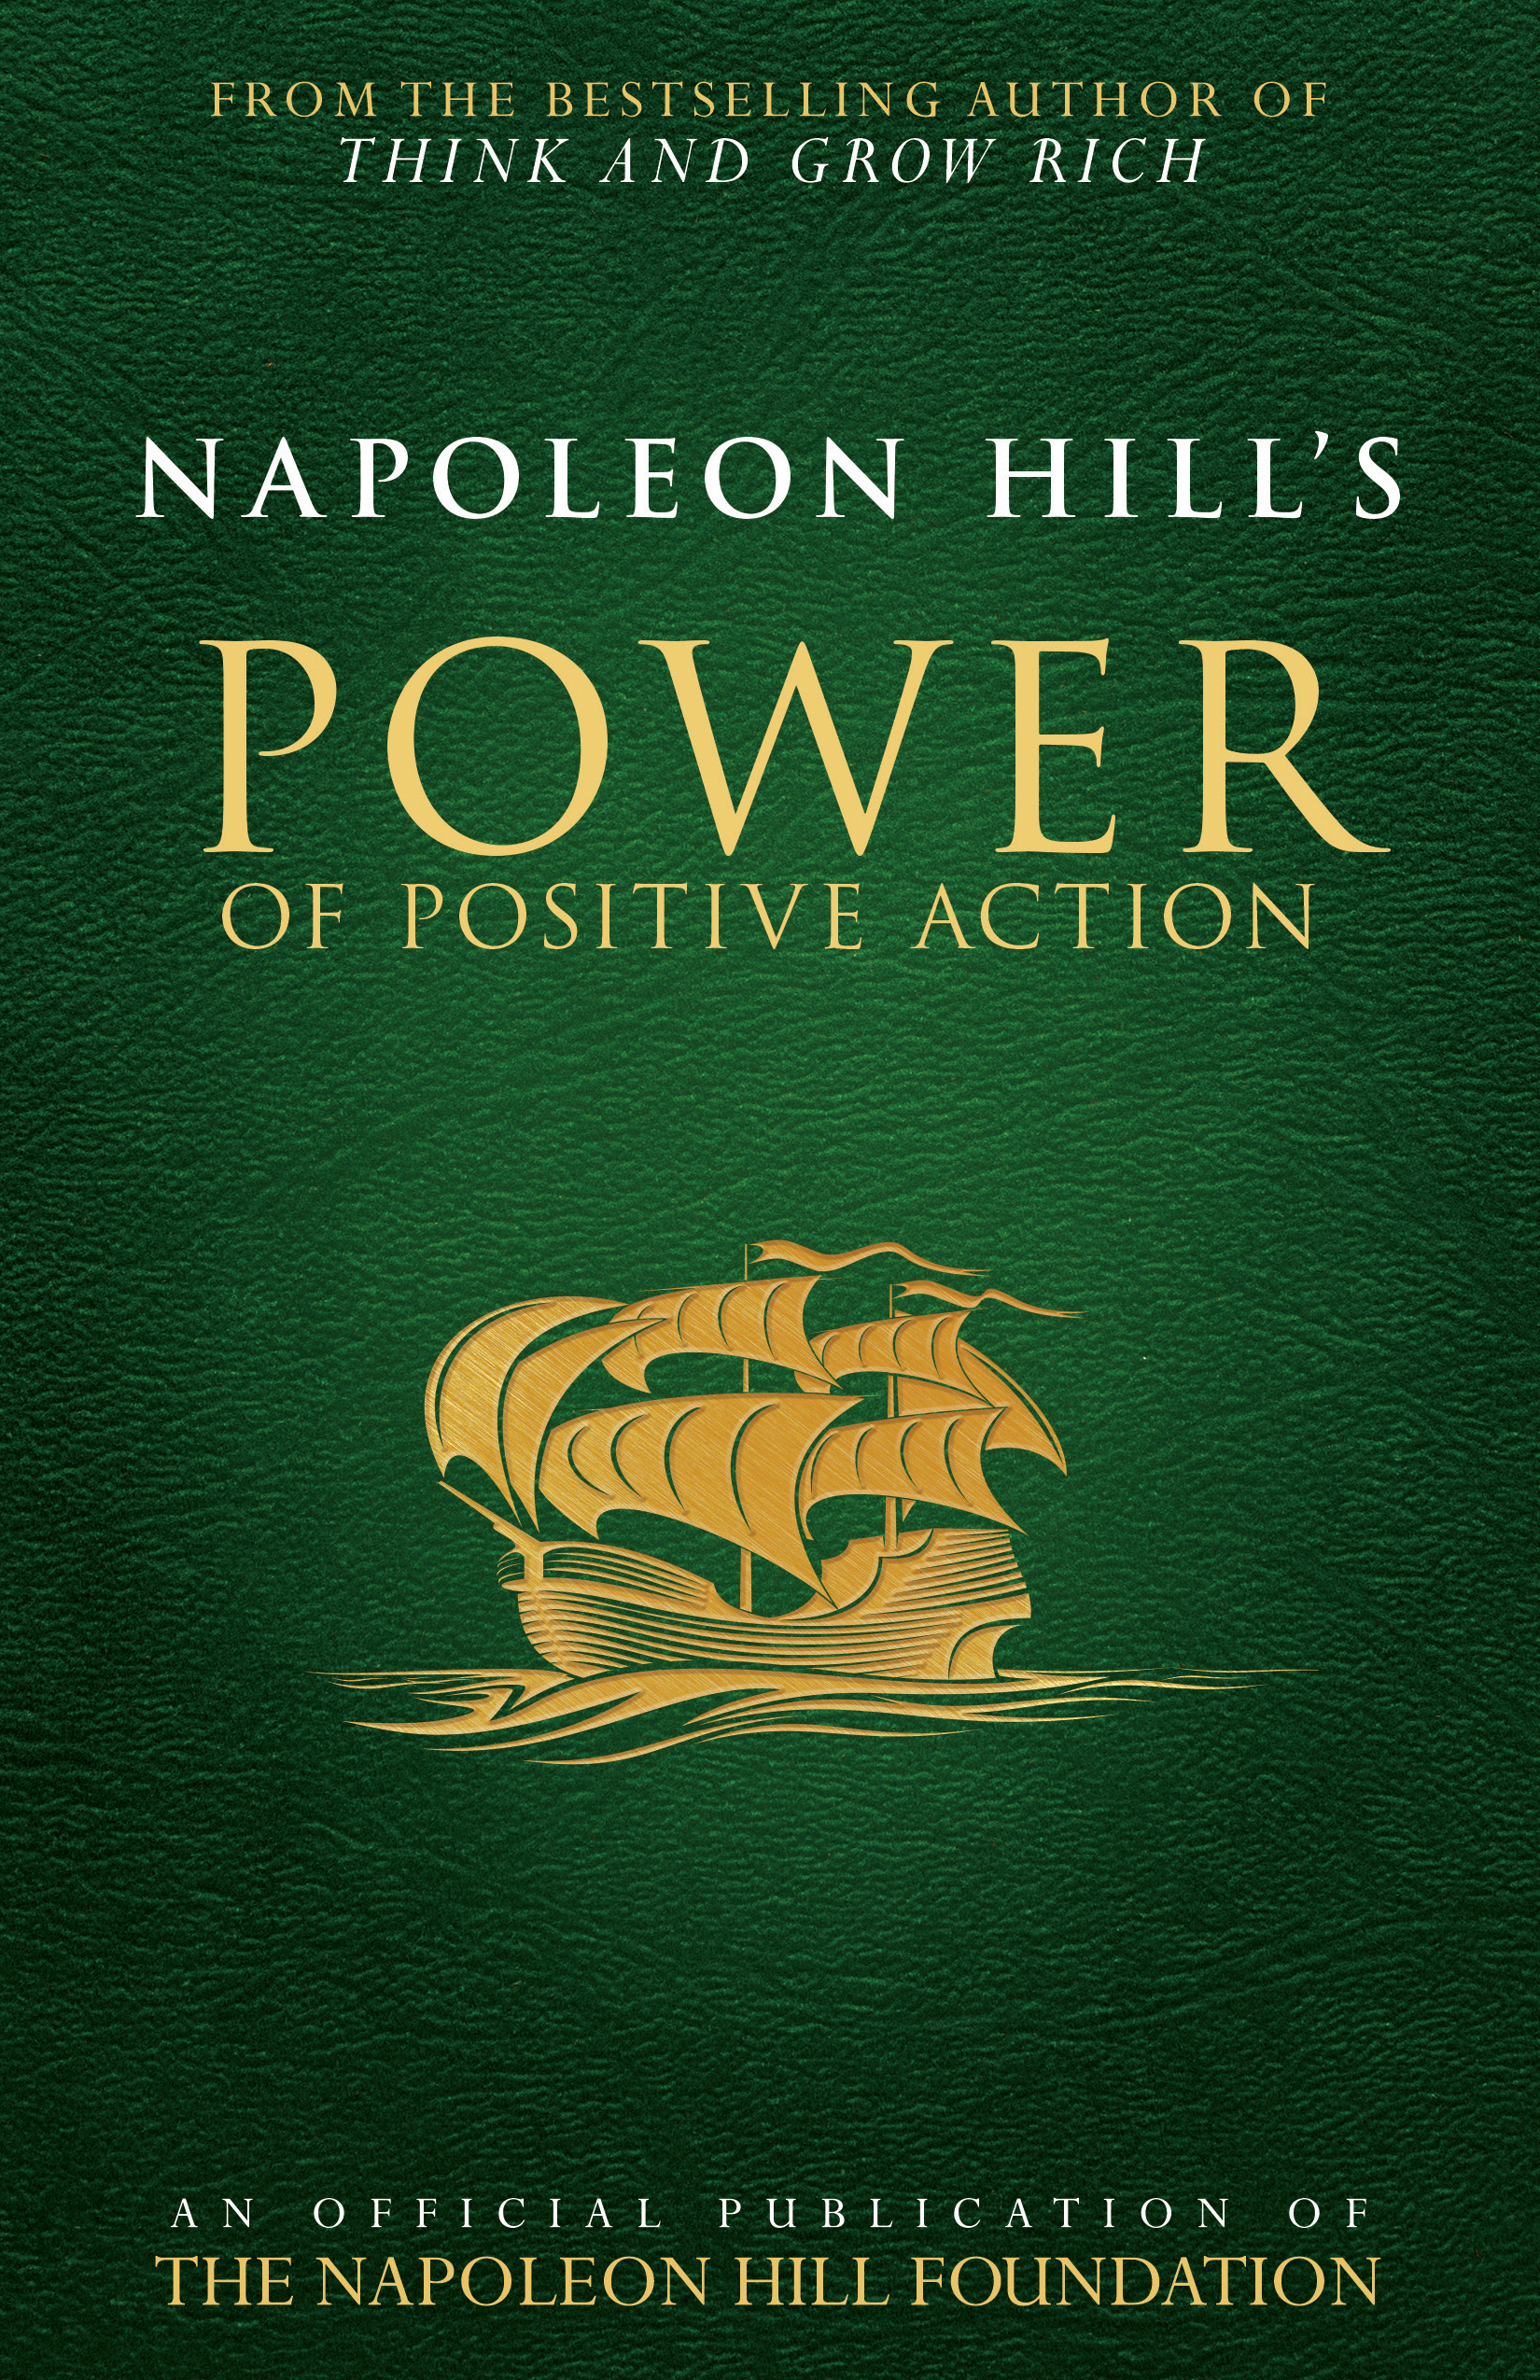 Napoleon_Hill's_Power_of_Positive_Action.jpg